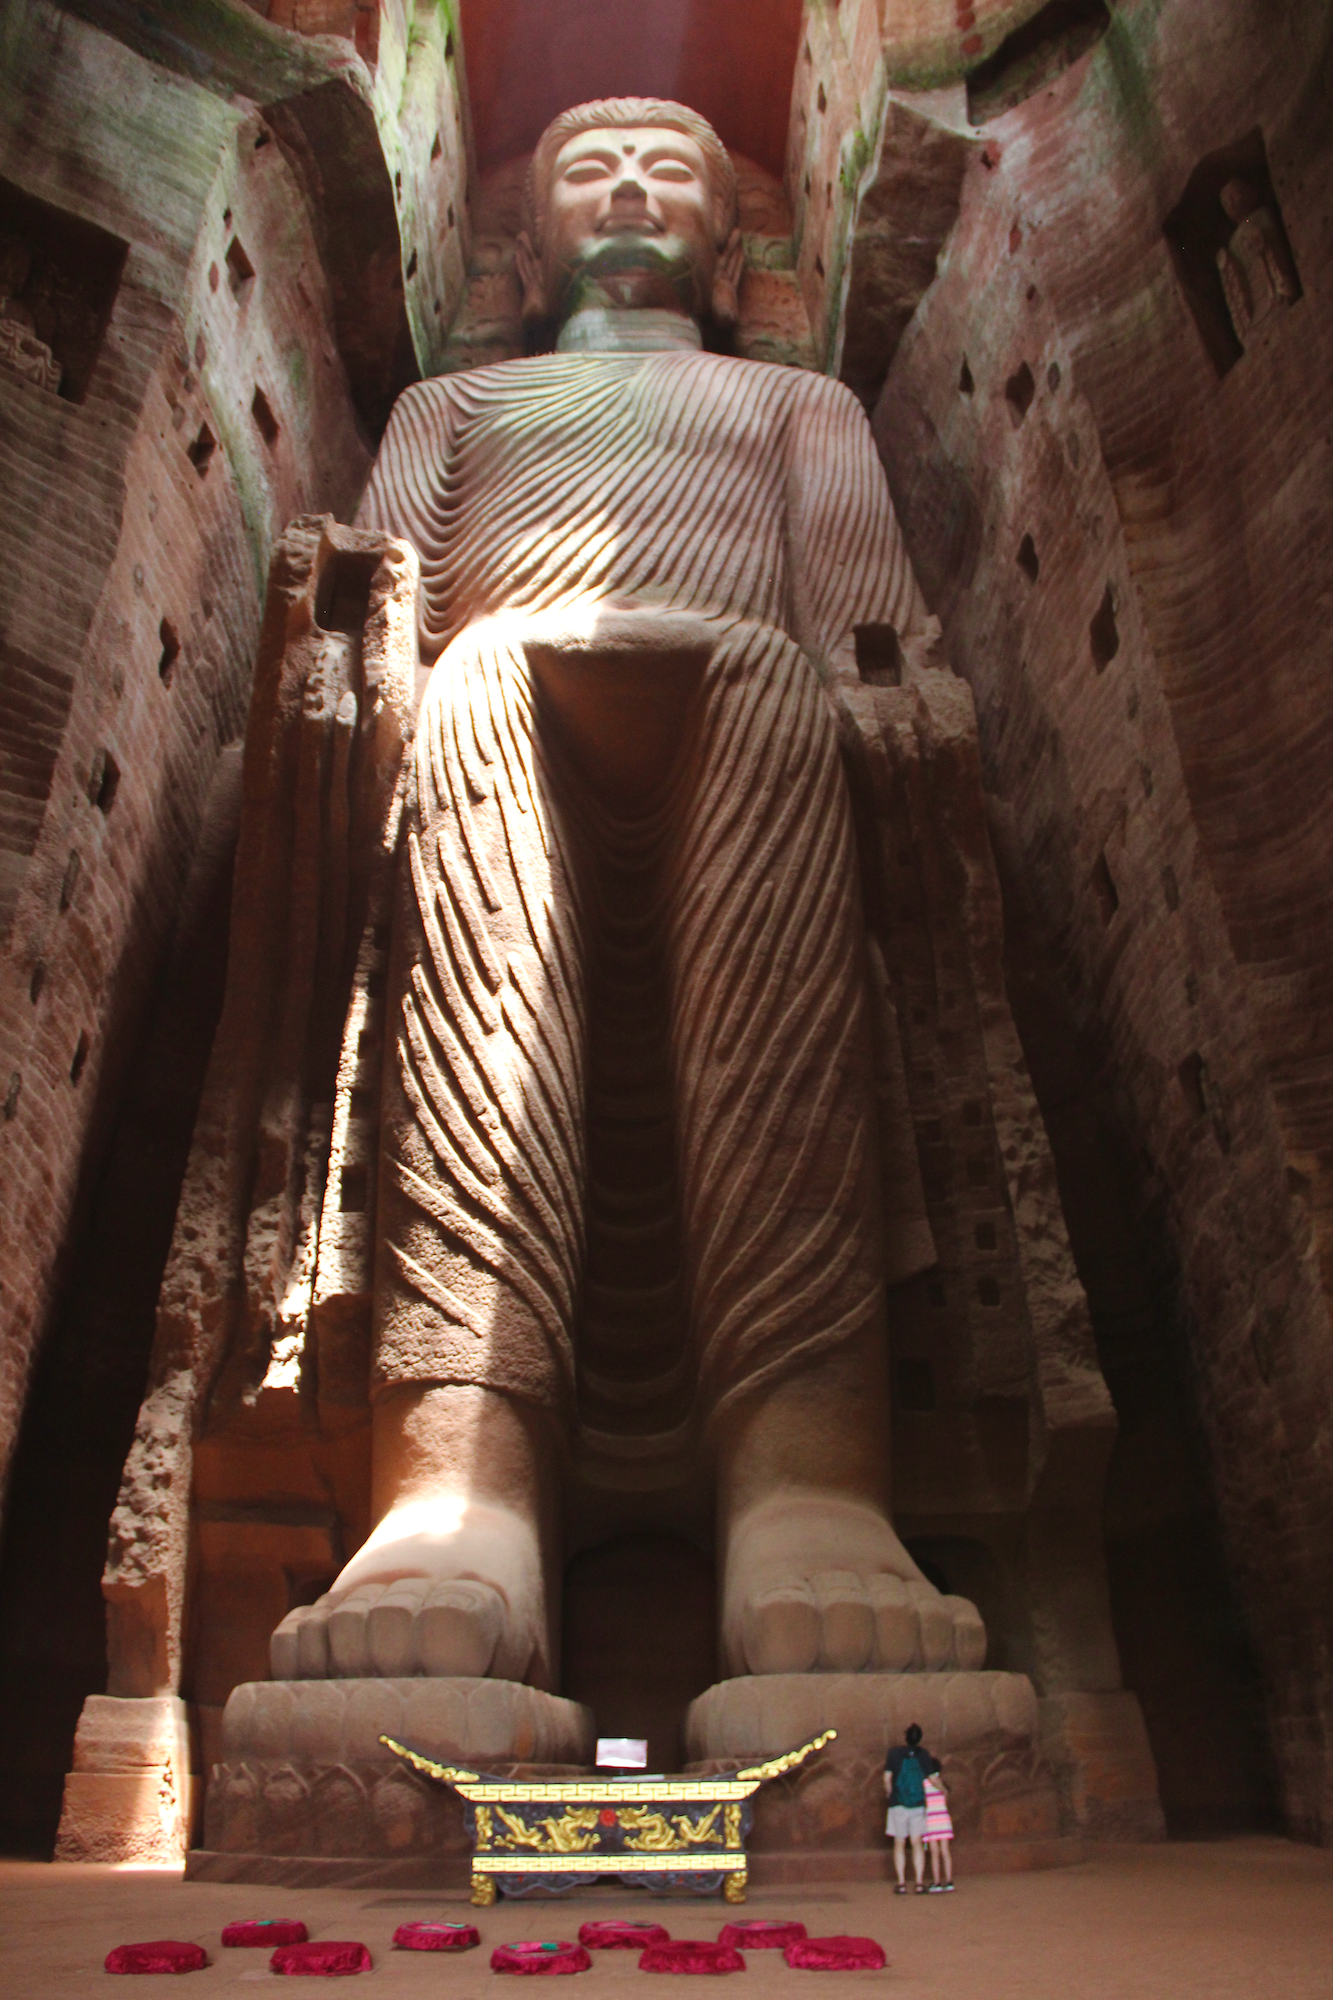 This is actually not the Leshan Giant Buddha - that one is as tall as the mountain and impossible to photograph. This one is carved inside the mountain. Loved the size comparison of this one vs. my dad and sister standing at the feet.